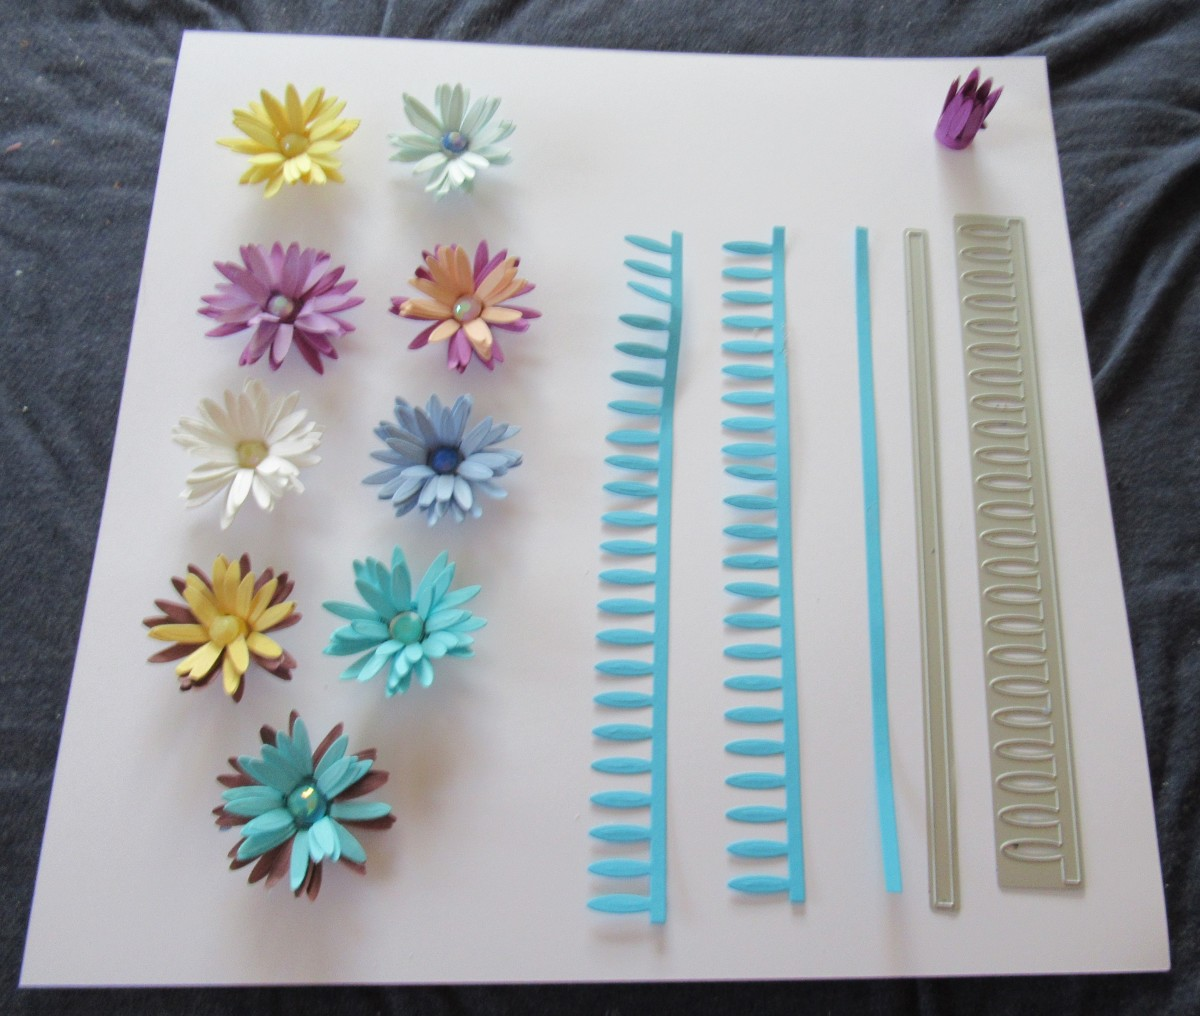 Dies are easy to use for rolled flowers. You use a die machine to cut the die, Then you roll and glue the flowers together. Showing the die and the die cut. Upper right hand corner shows the flower after it is rolled, Then the final flower design/